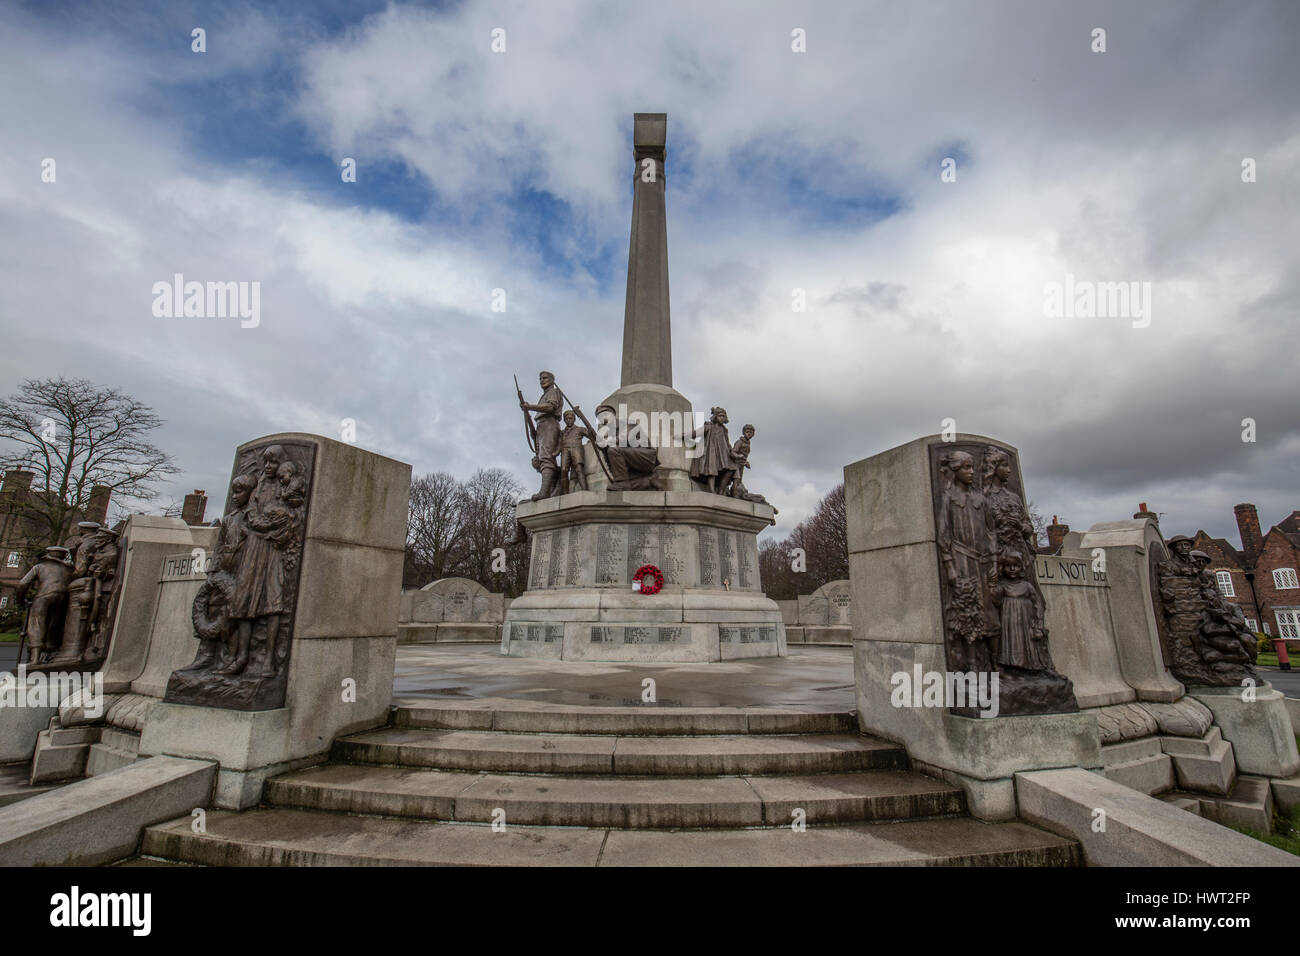 Port Sunlight - a model village and suburb in the Metropolitan Borough of Wirral, Merseyside. War Memorial - Stock Image